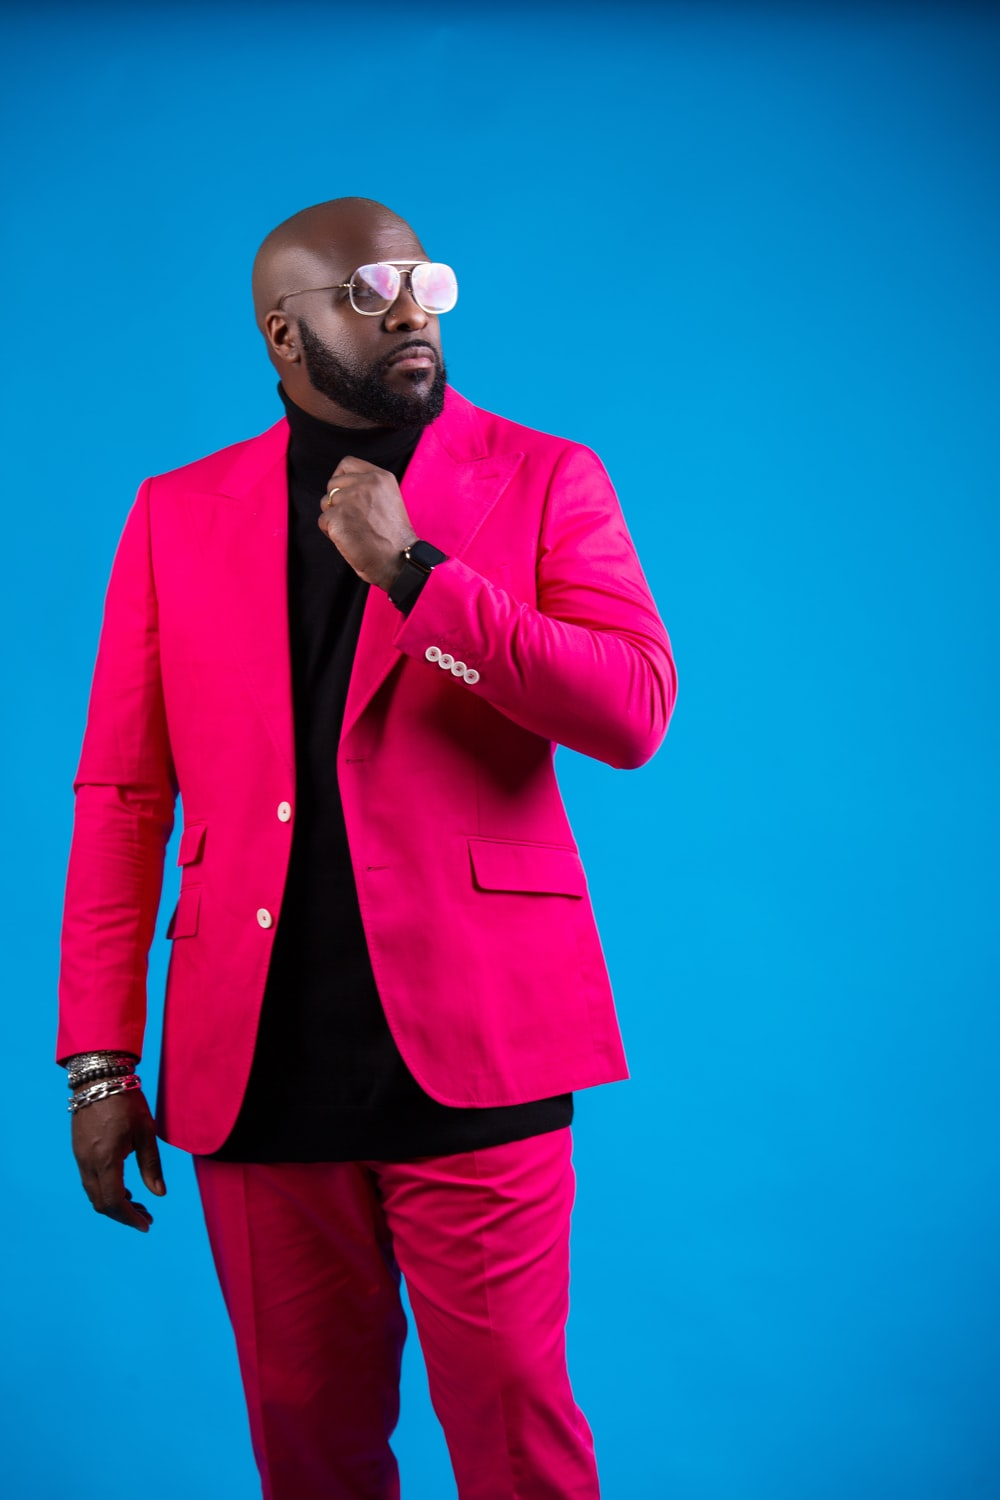 man in pink suit wearing sunglasses